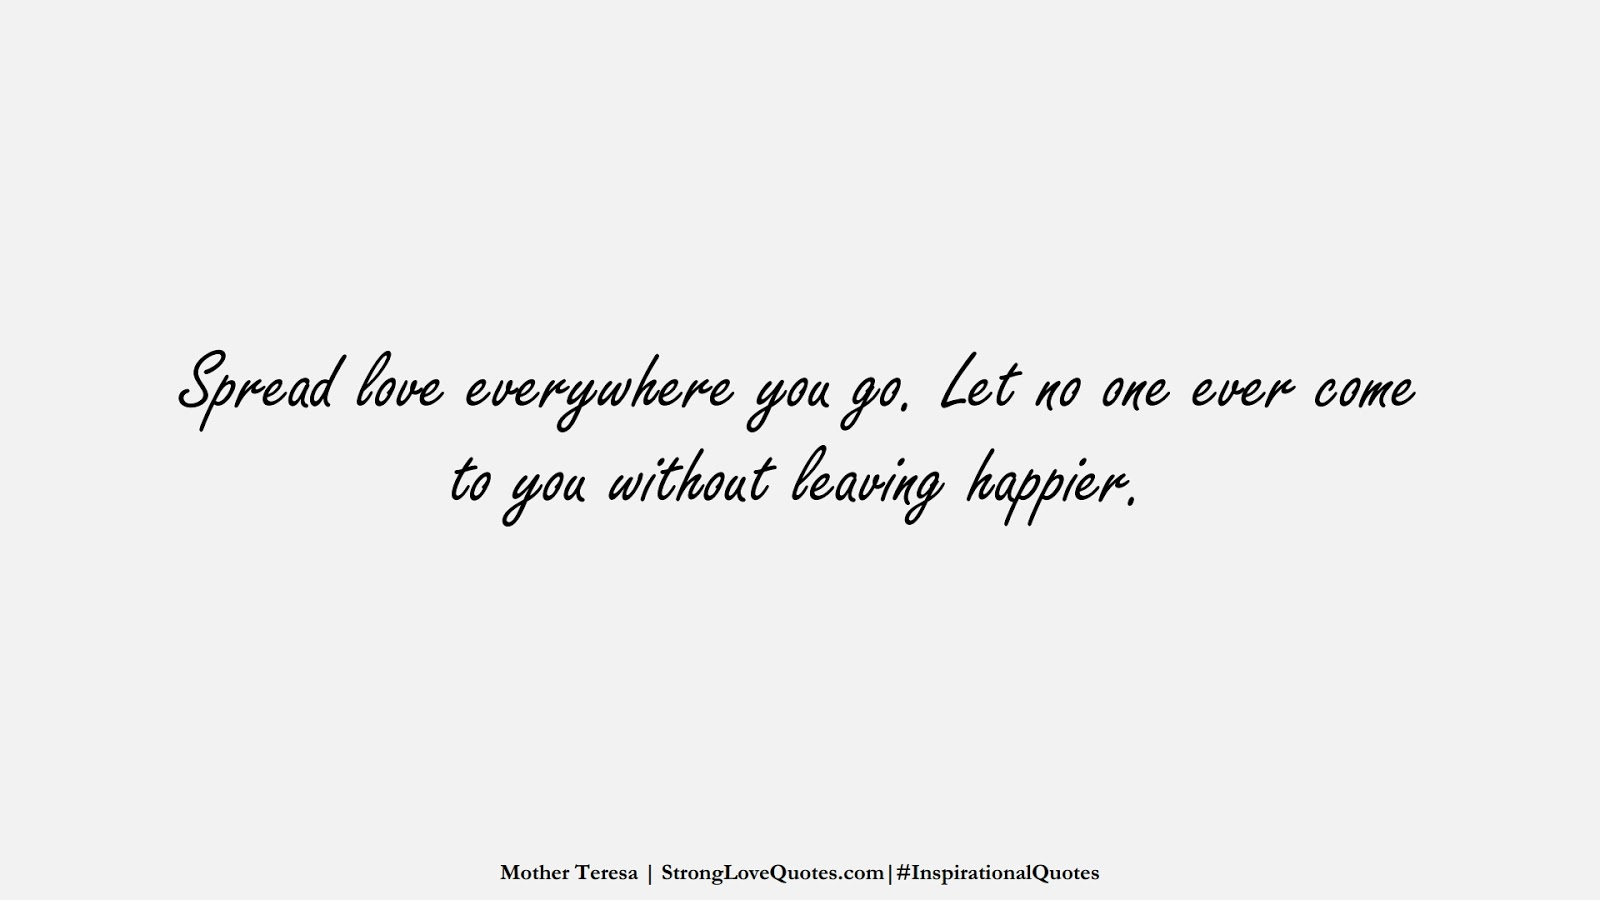 Spread love everywhere you go. Let no one ever come to you without leaving happier. (Mother Teresa);  #InspirationalQuotes